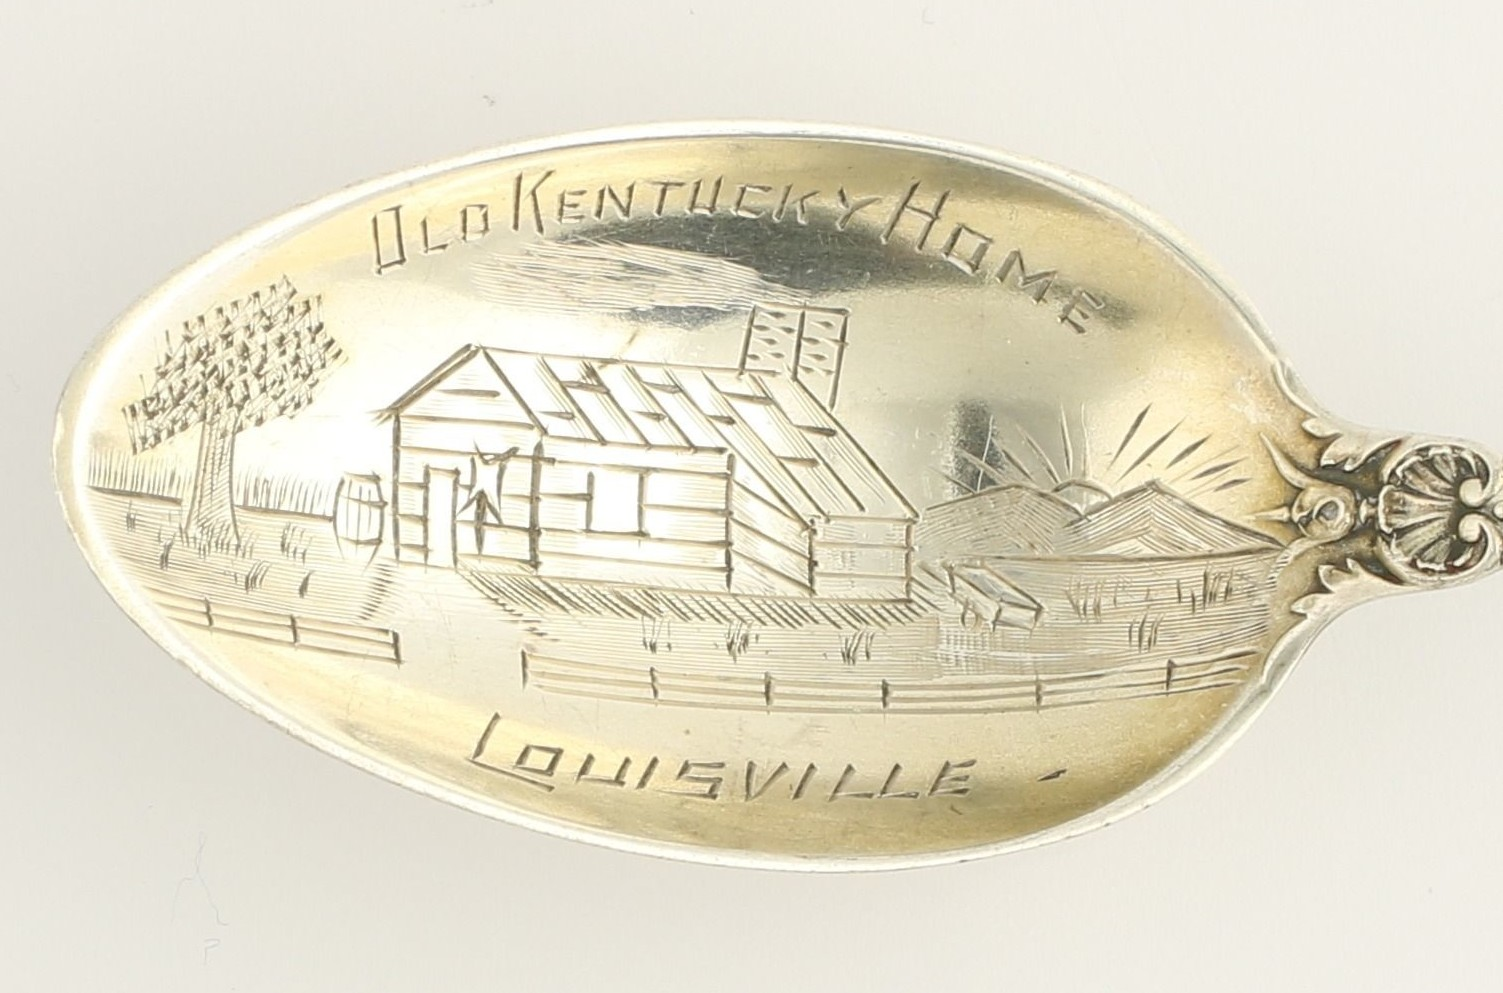 My Old Kentucky Home Antique Sterling Silver Collectibles